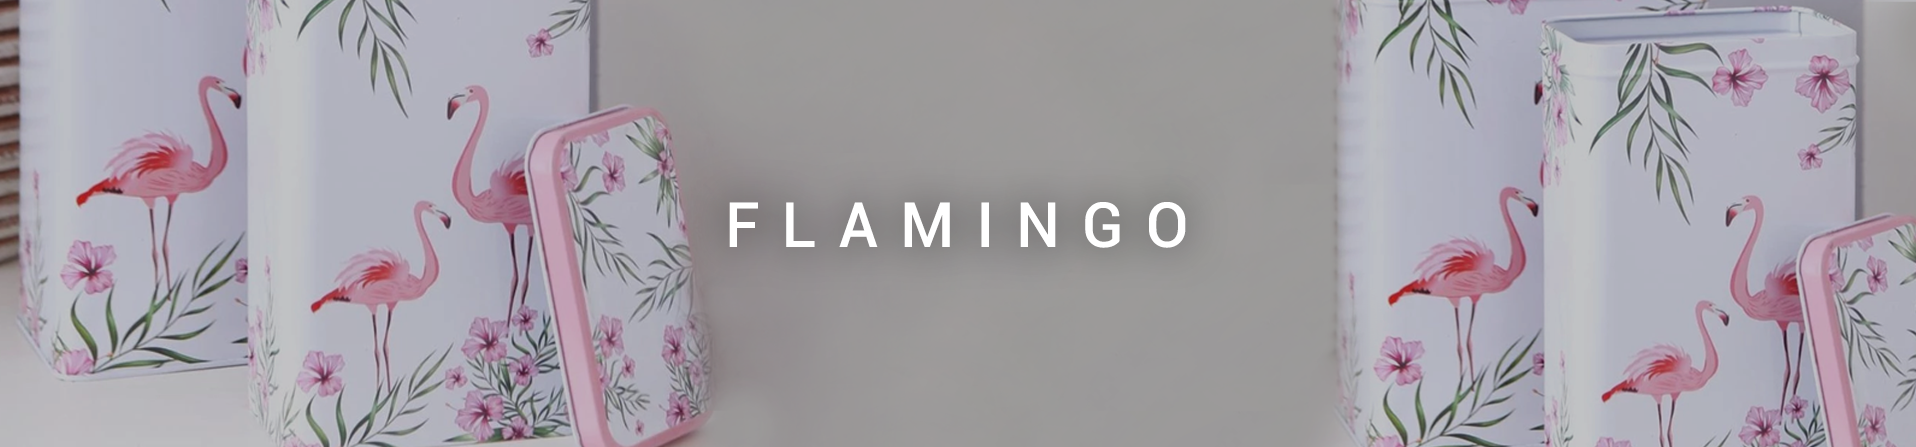 - Flamingo Theme Gifts -